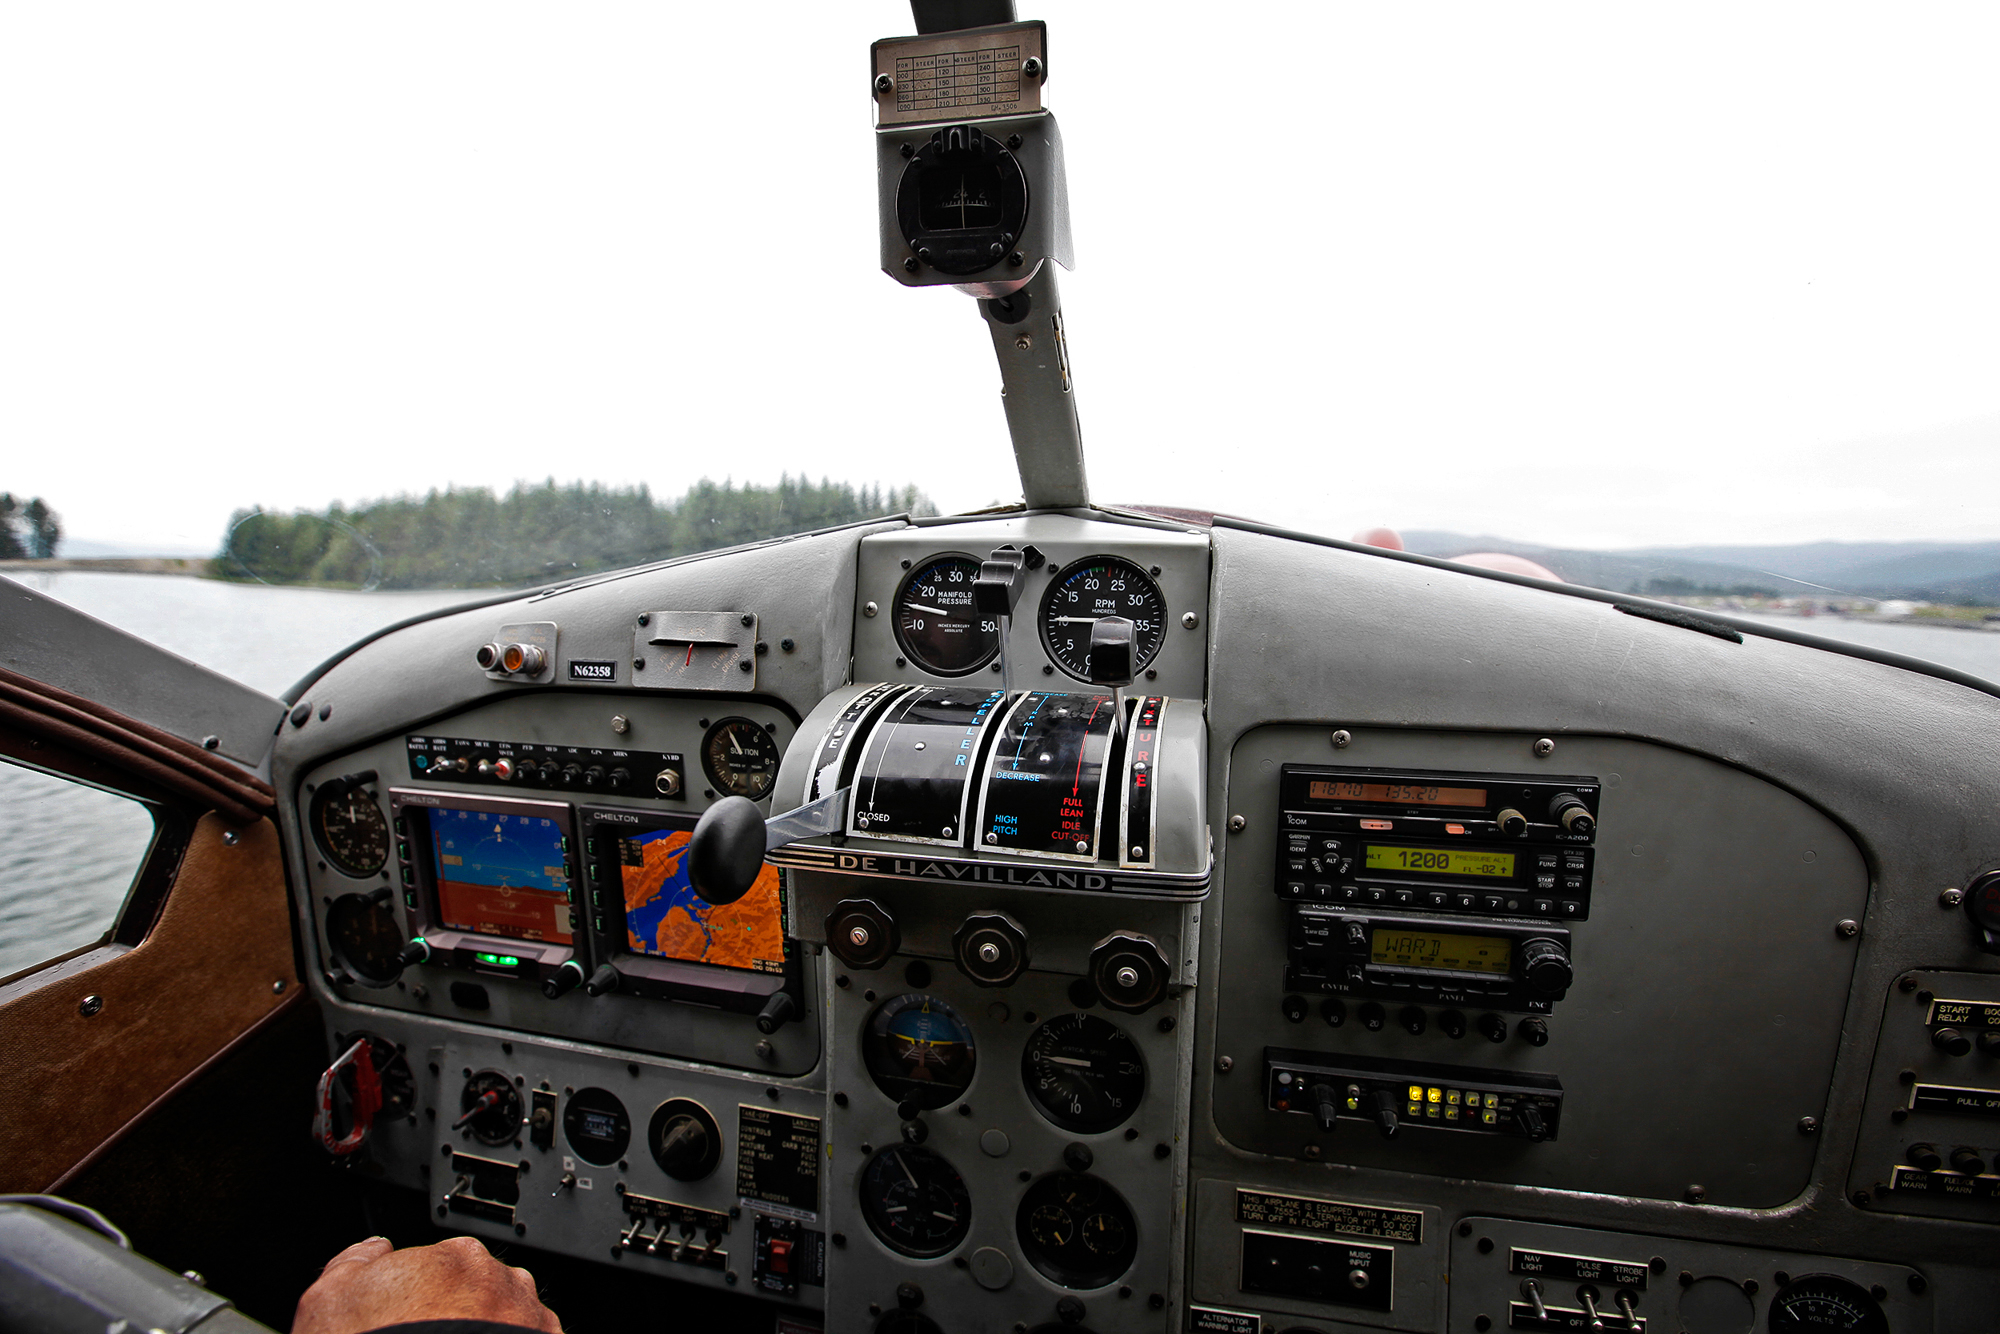 (2/3) Reaching an unnamed tidal creek less than 20 miles from downtown Juneau is accomplish via a Ward Air DeHavilland Beaver float plane. These more than half-century old aircraft are the most heralded bush planes in Alaska and beyond (photo: Earl Harper).